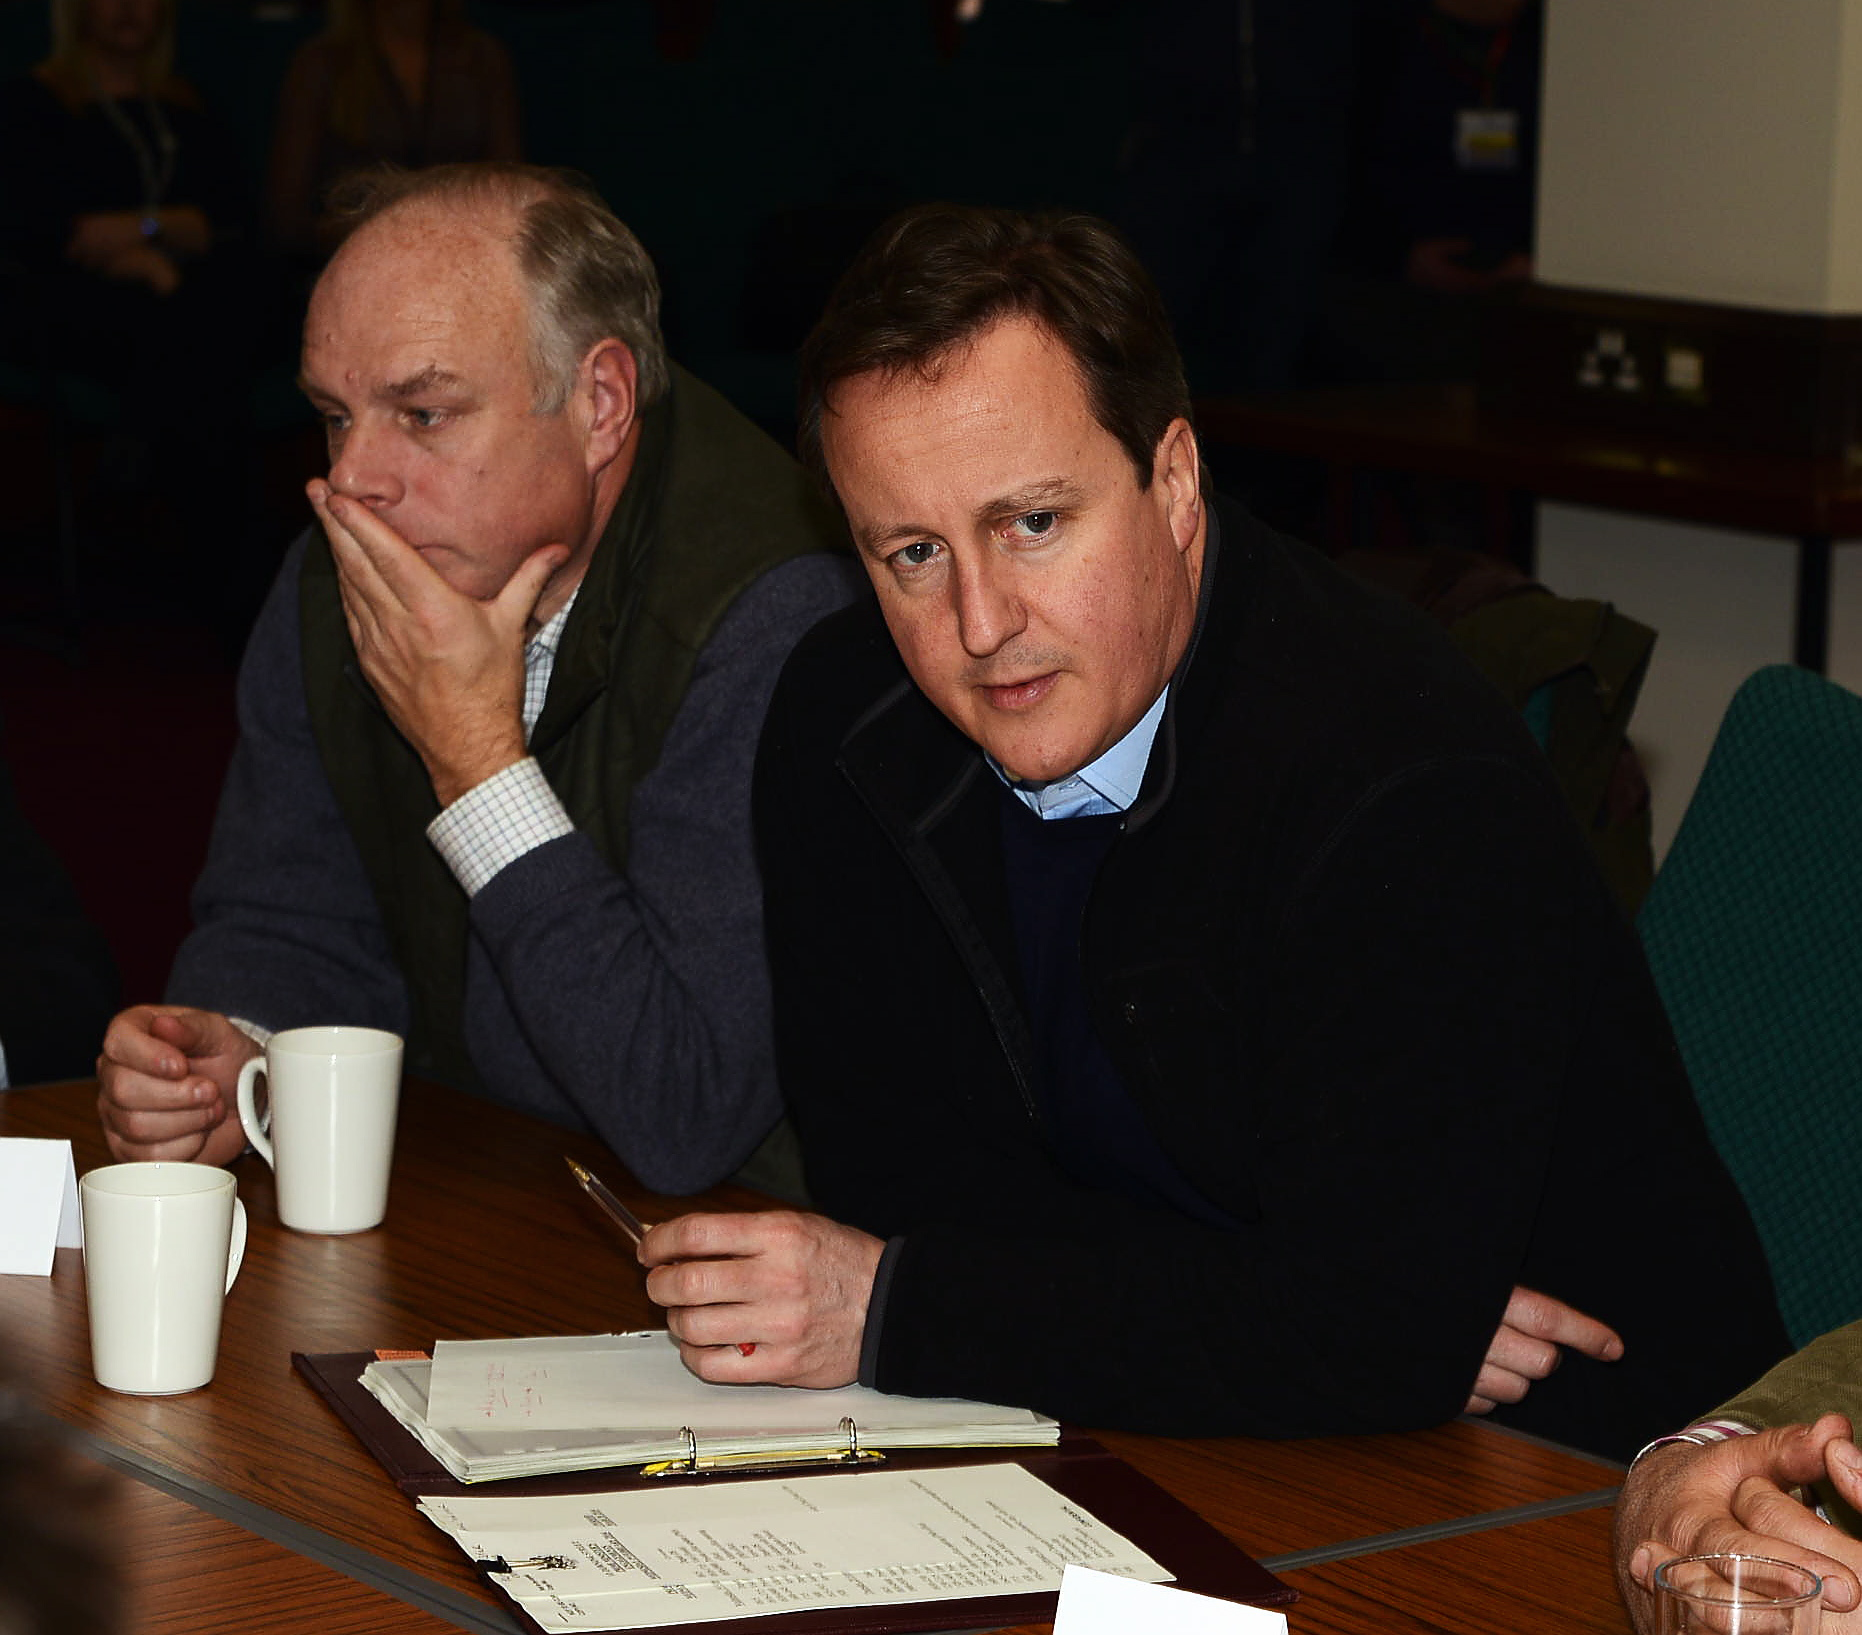 Cameron quizzed by press during Somerset visit